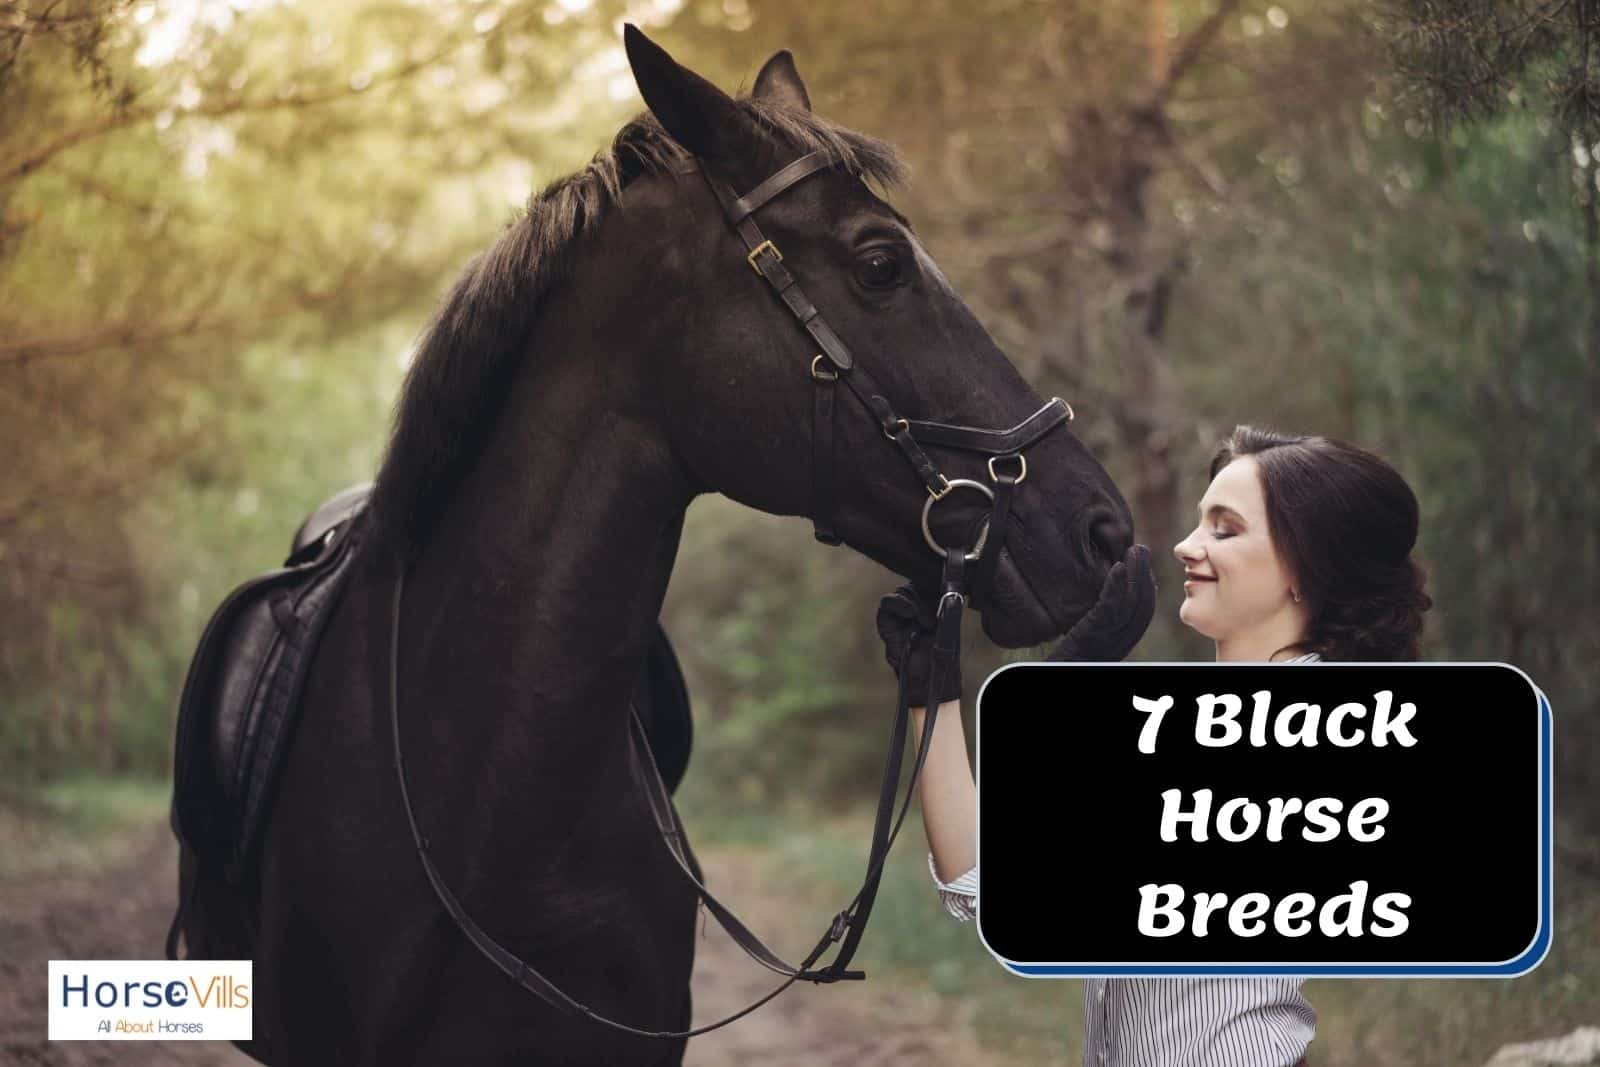 an equestrian touching the face of a black horse